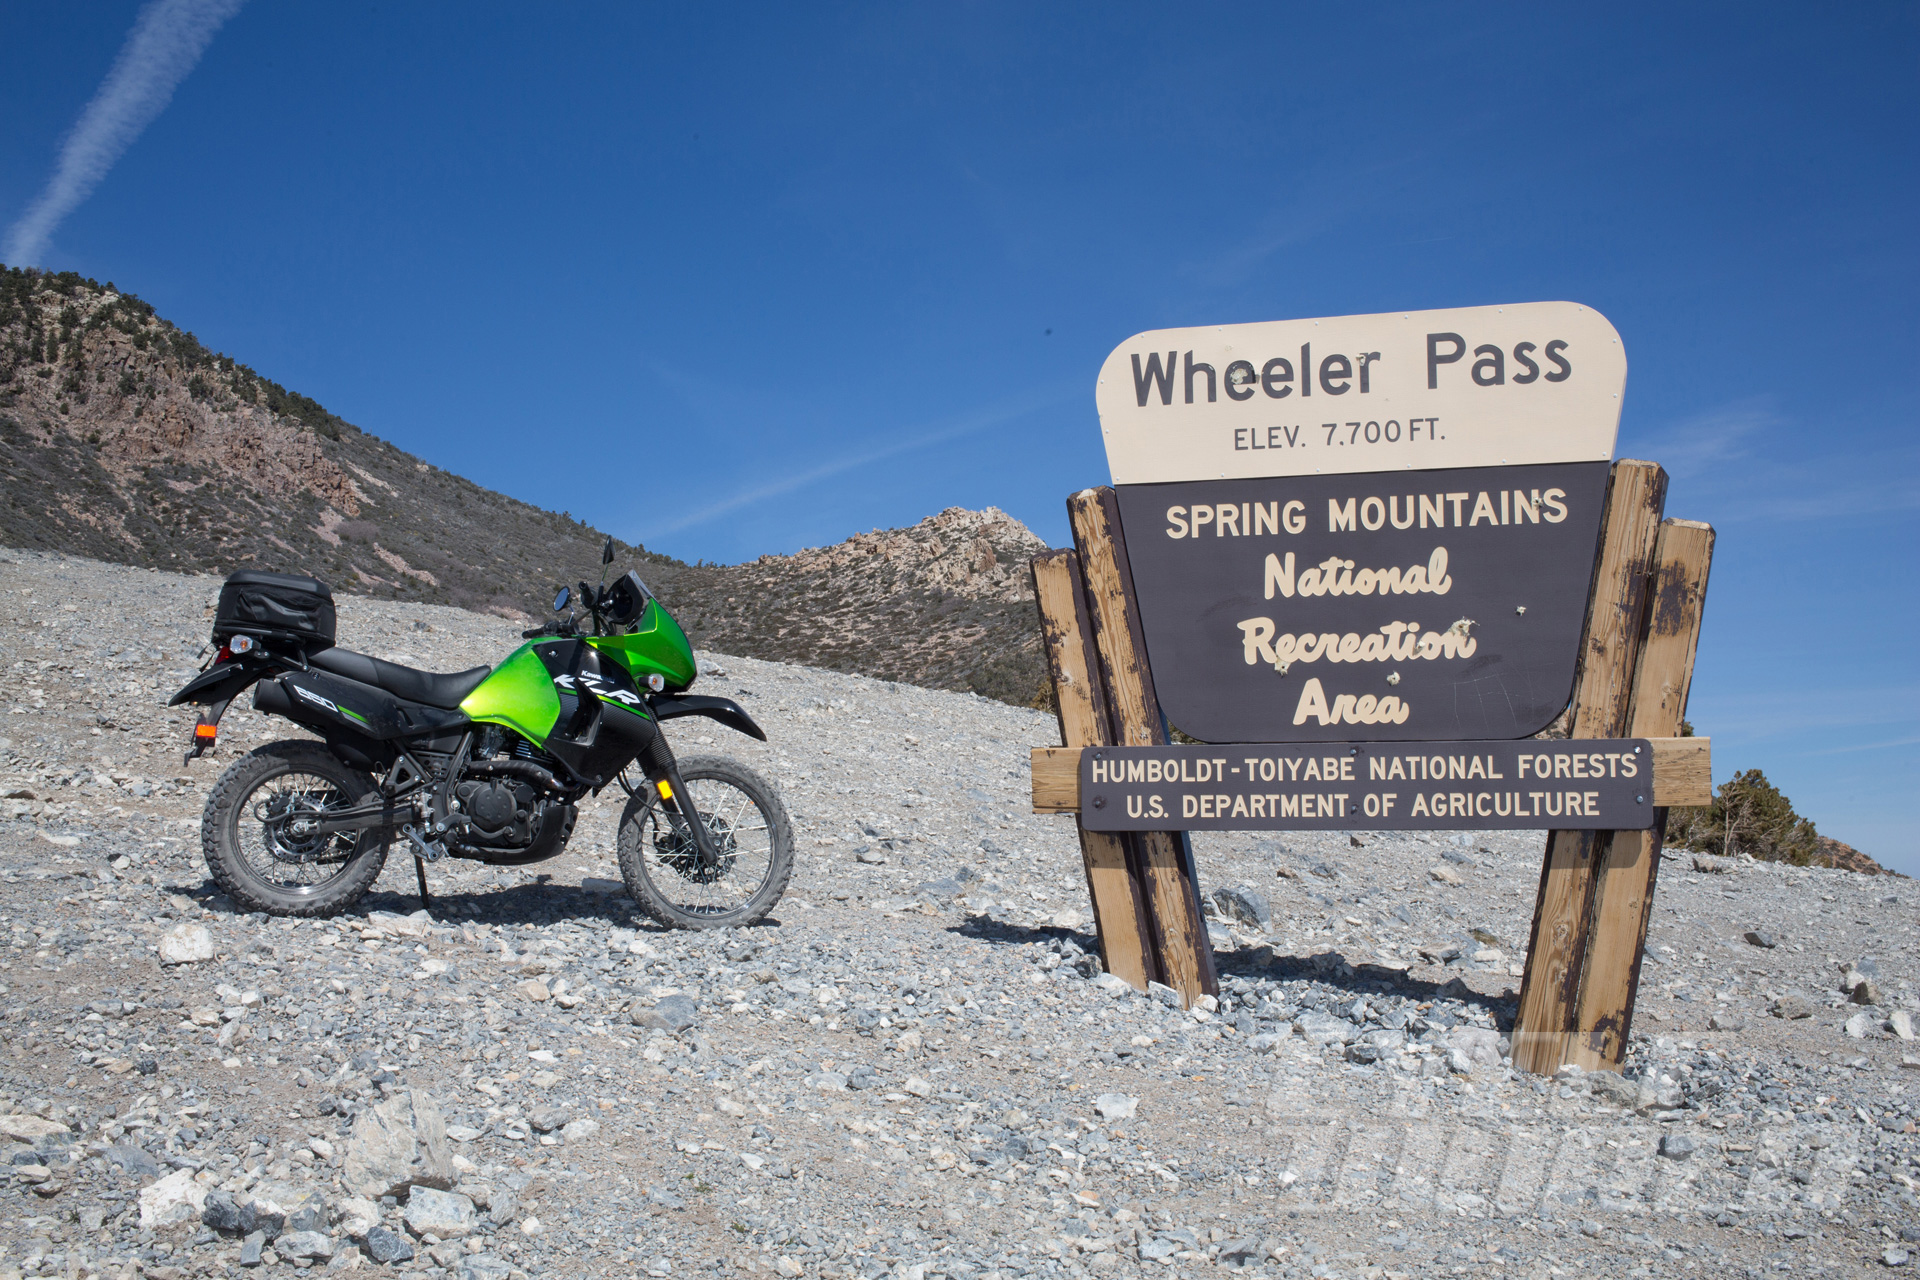 2014 Kawasaki KLR650 New Edition- First Ride Review- Photos